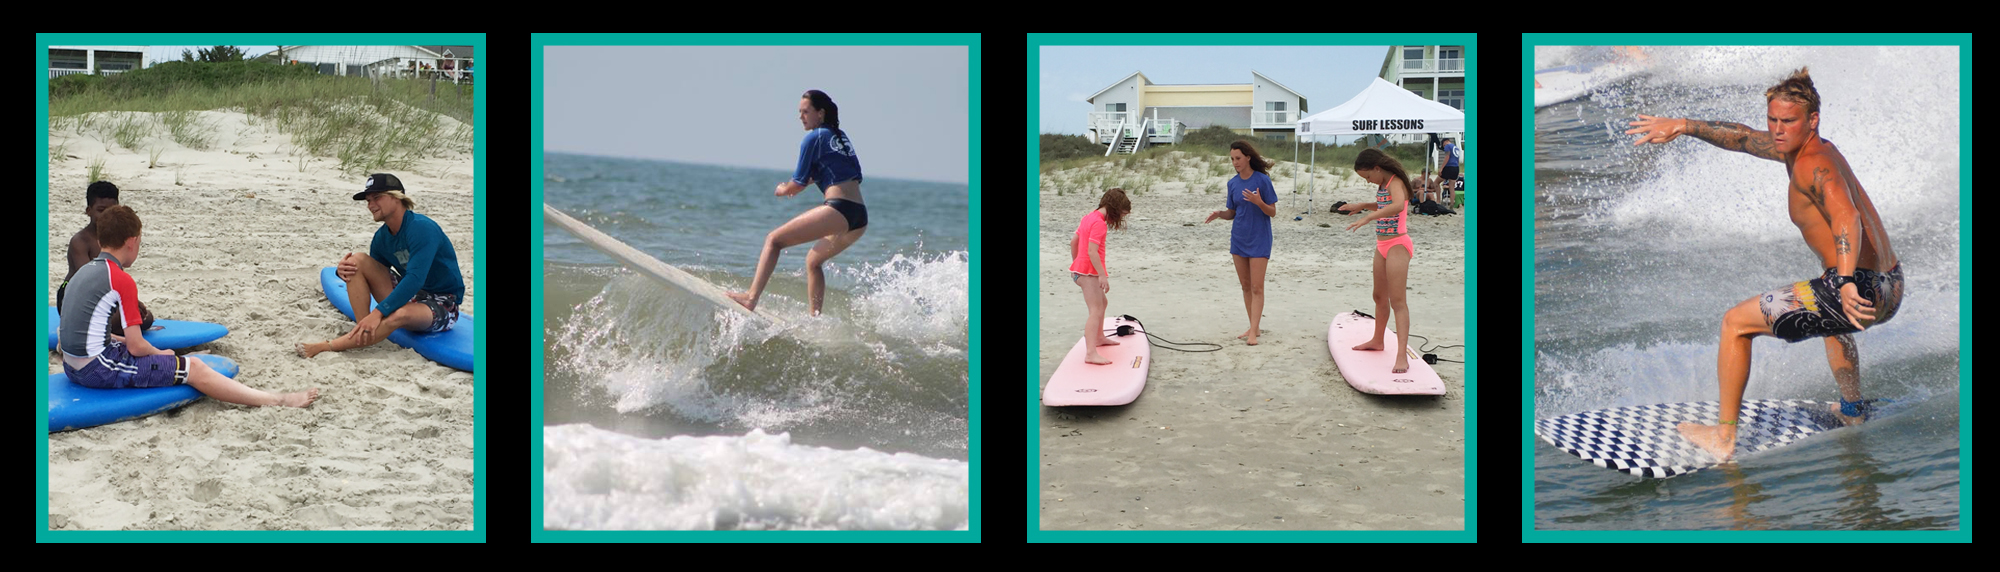 Surfing Lessons in Emerald Isle